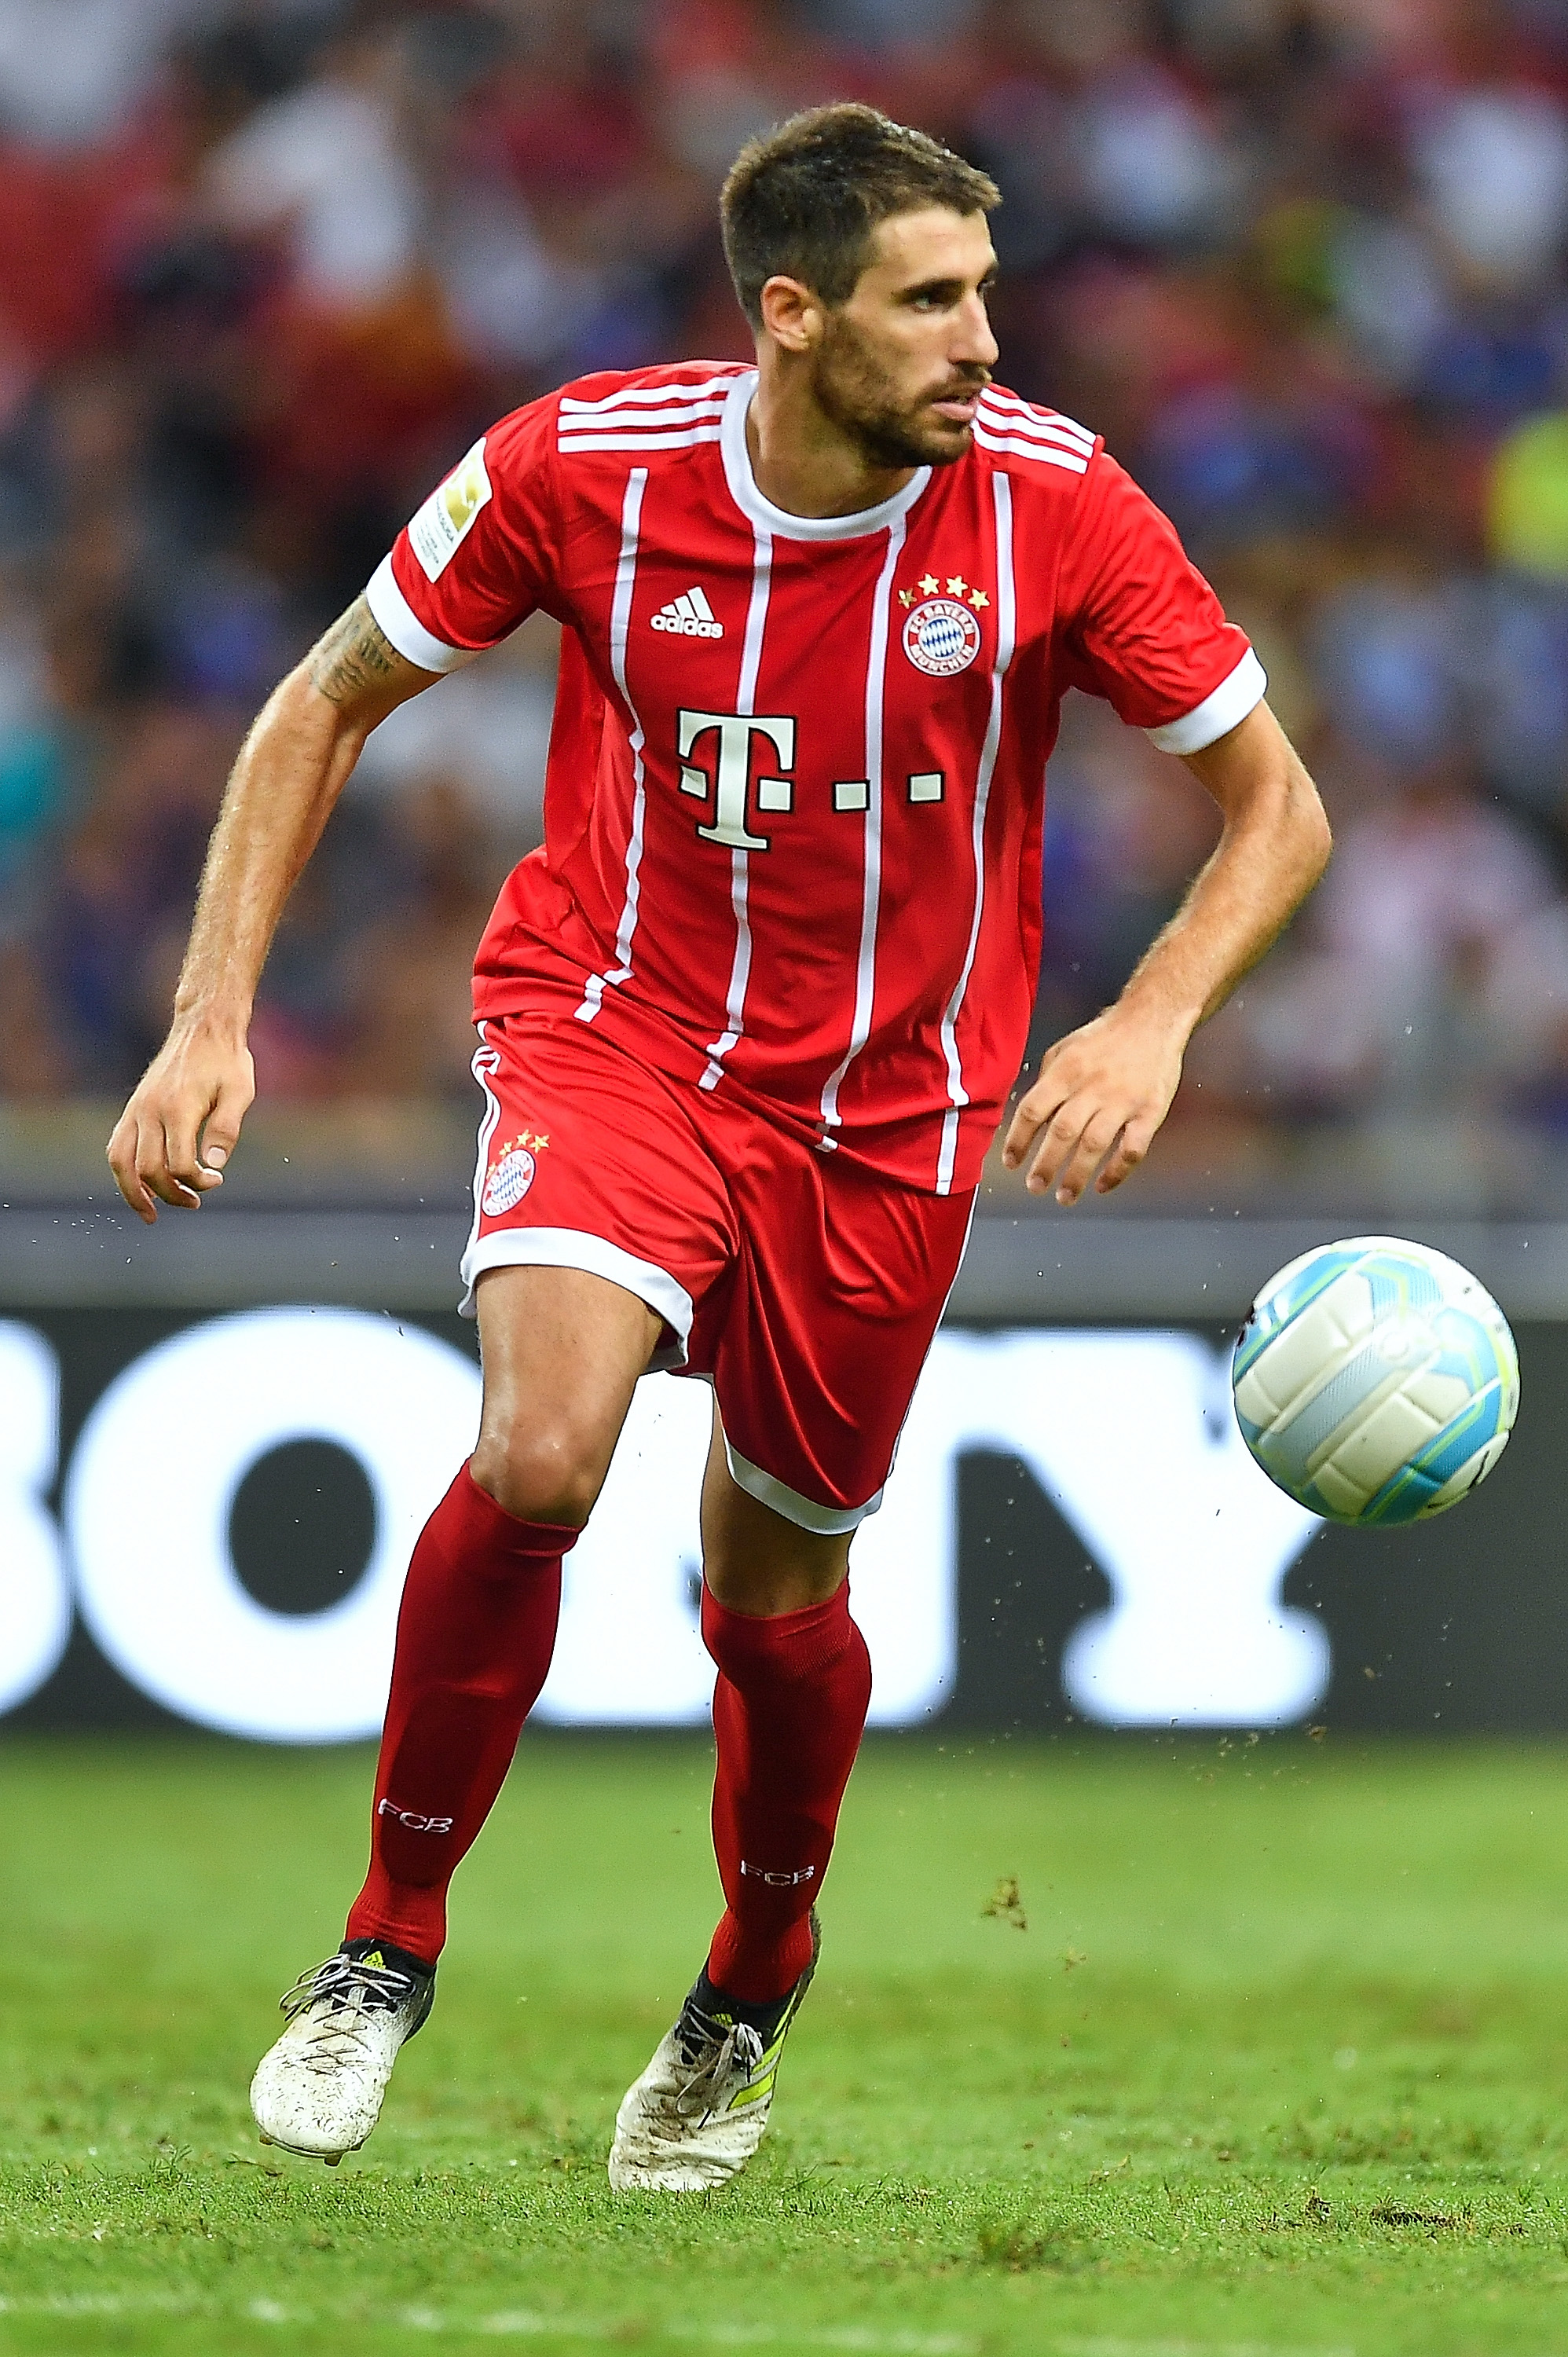 Bayern Munich Four takeaways from Supercup win over Dortmund Page 2